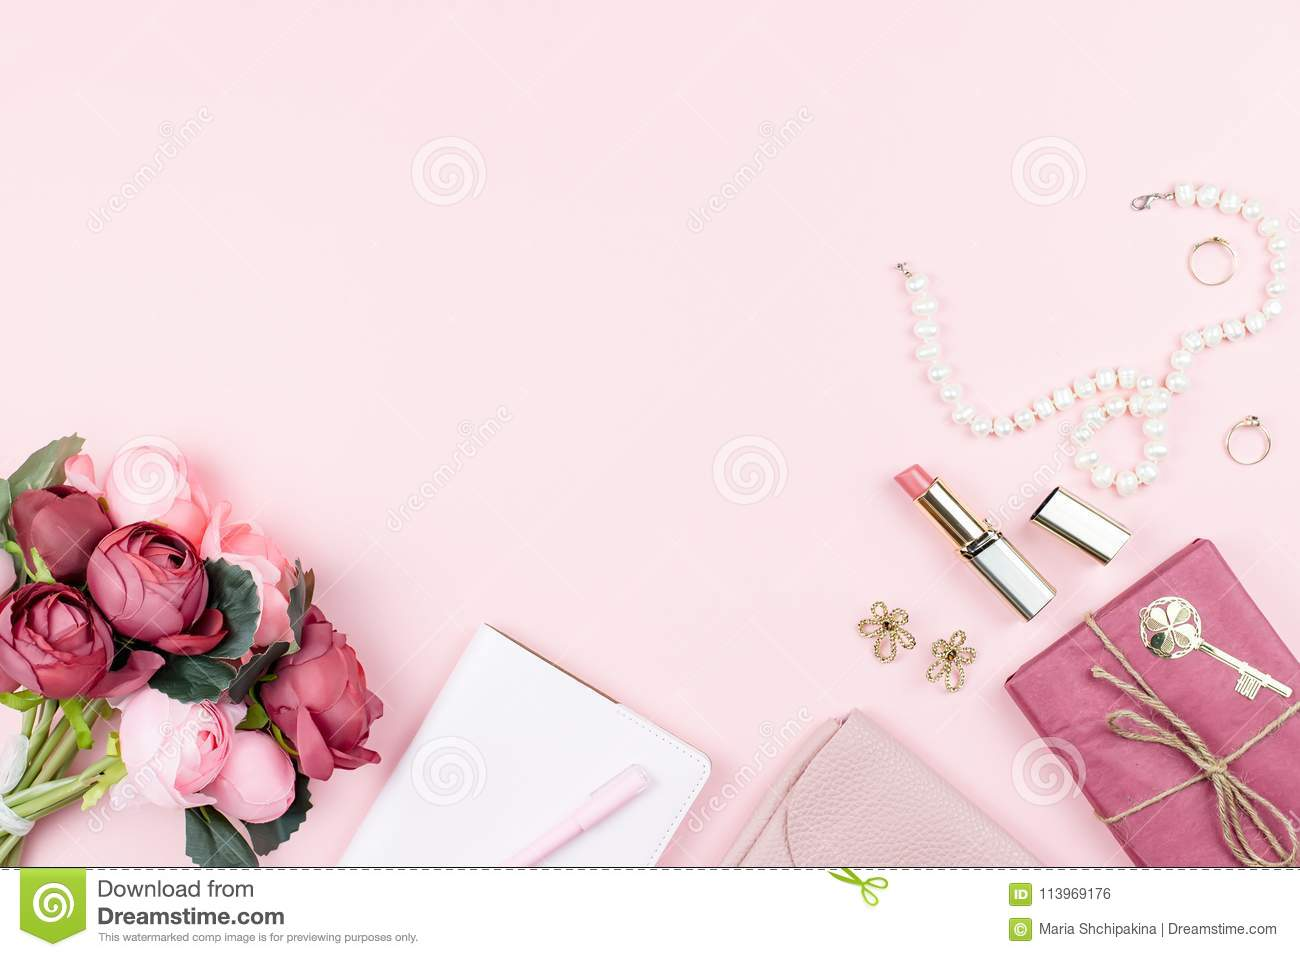 Beauty Blog Concept Flat Lay. Fashion Accessories, Flowers